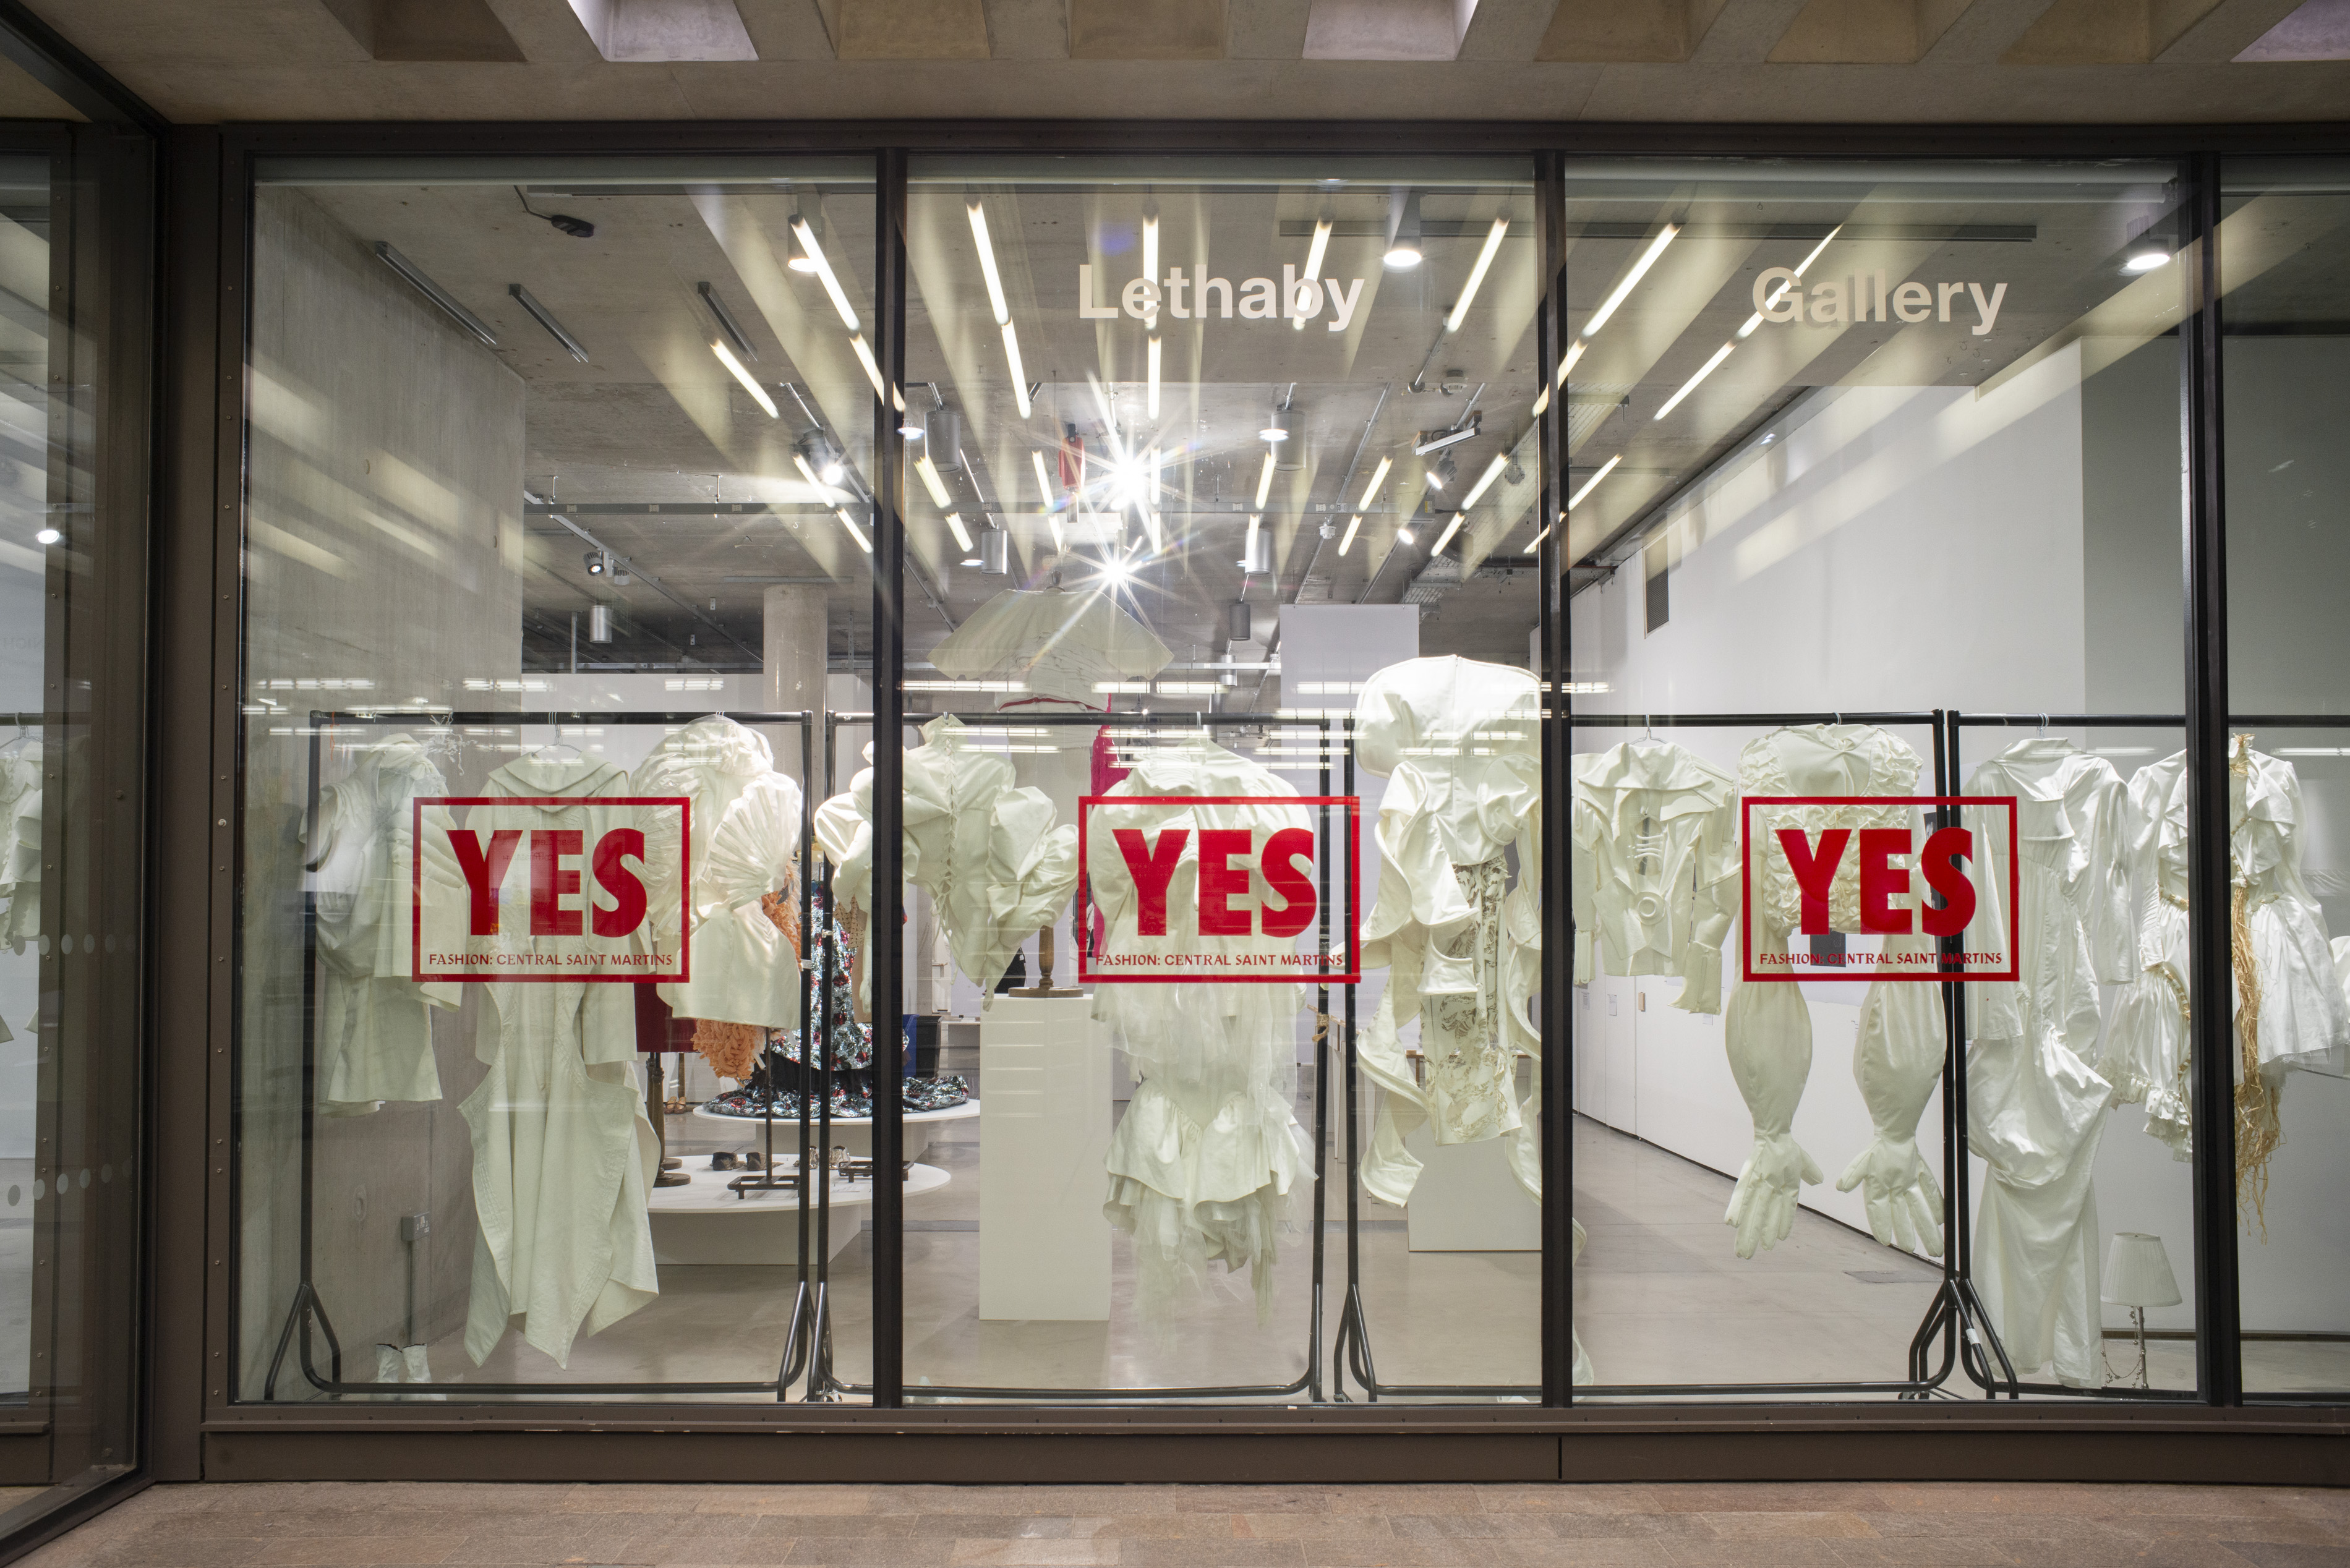 Exhibition window with YES stamped across